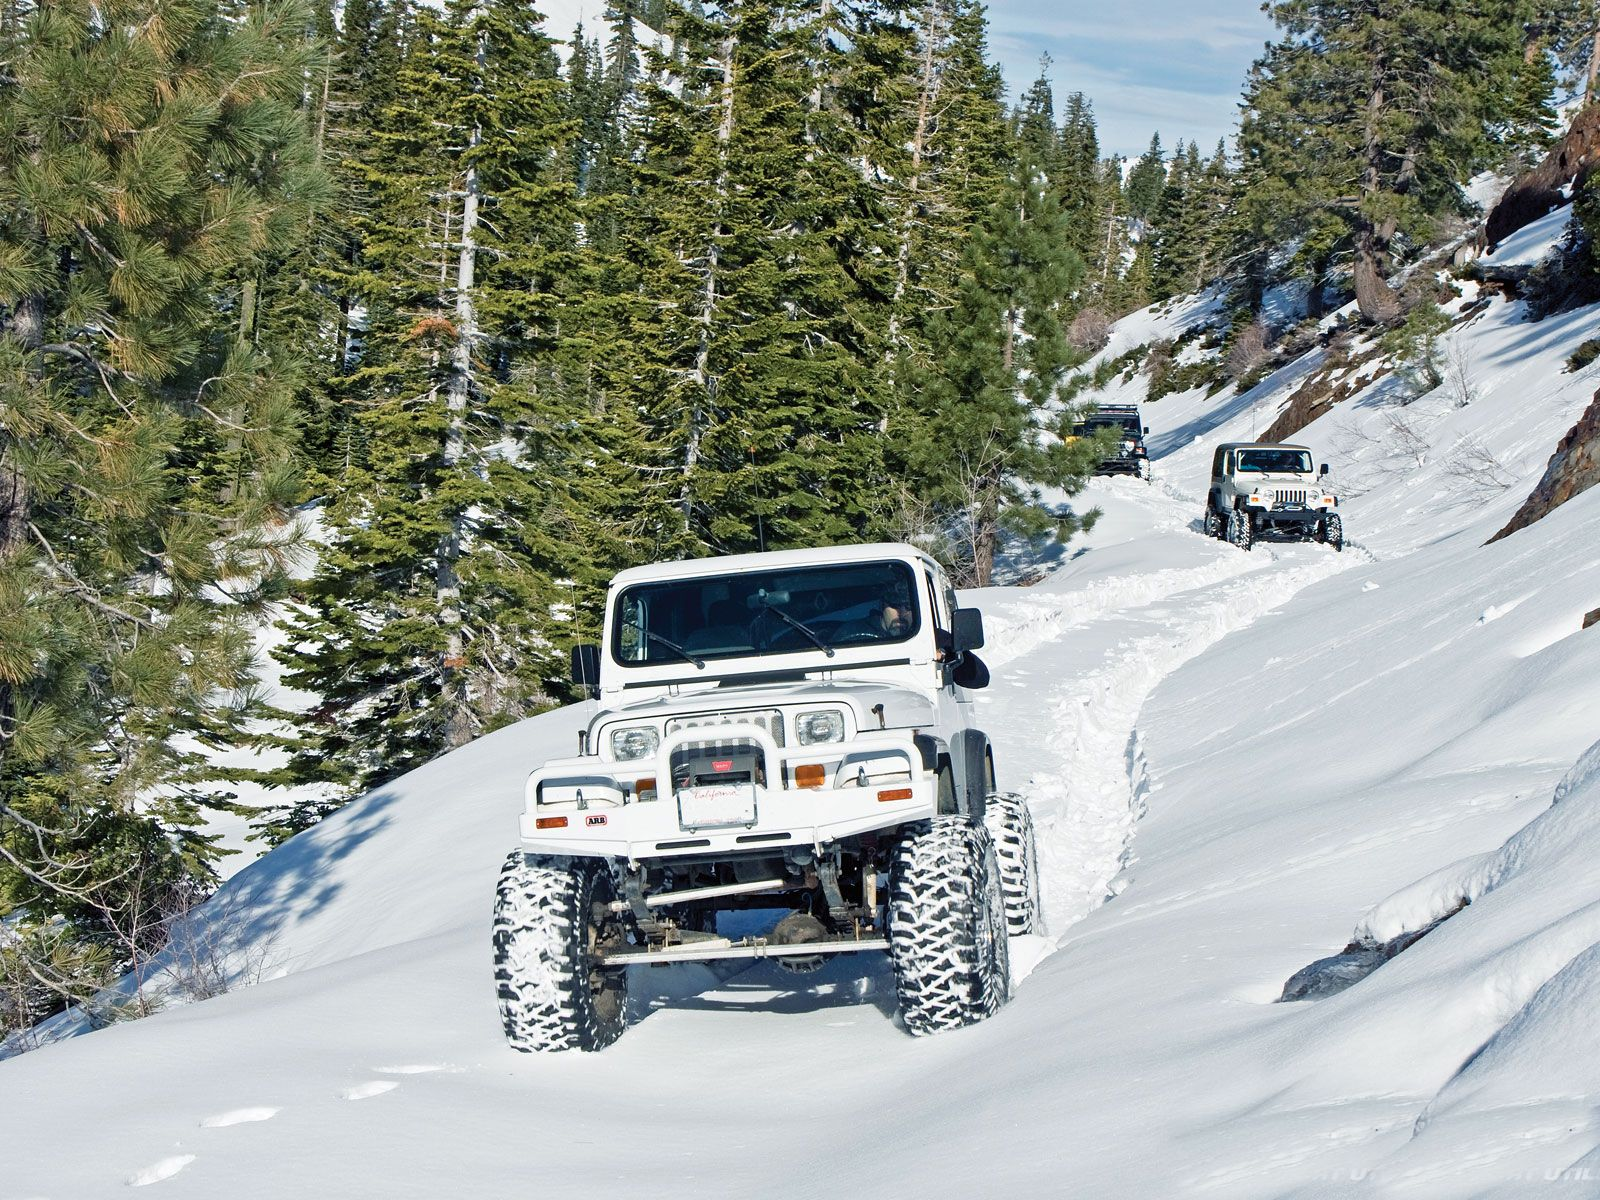 Tread Lightly U2013 Four Wheeling In The Snow Safely